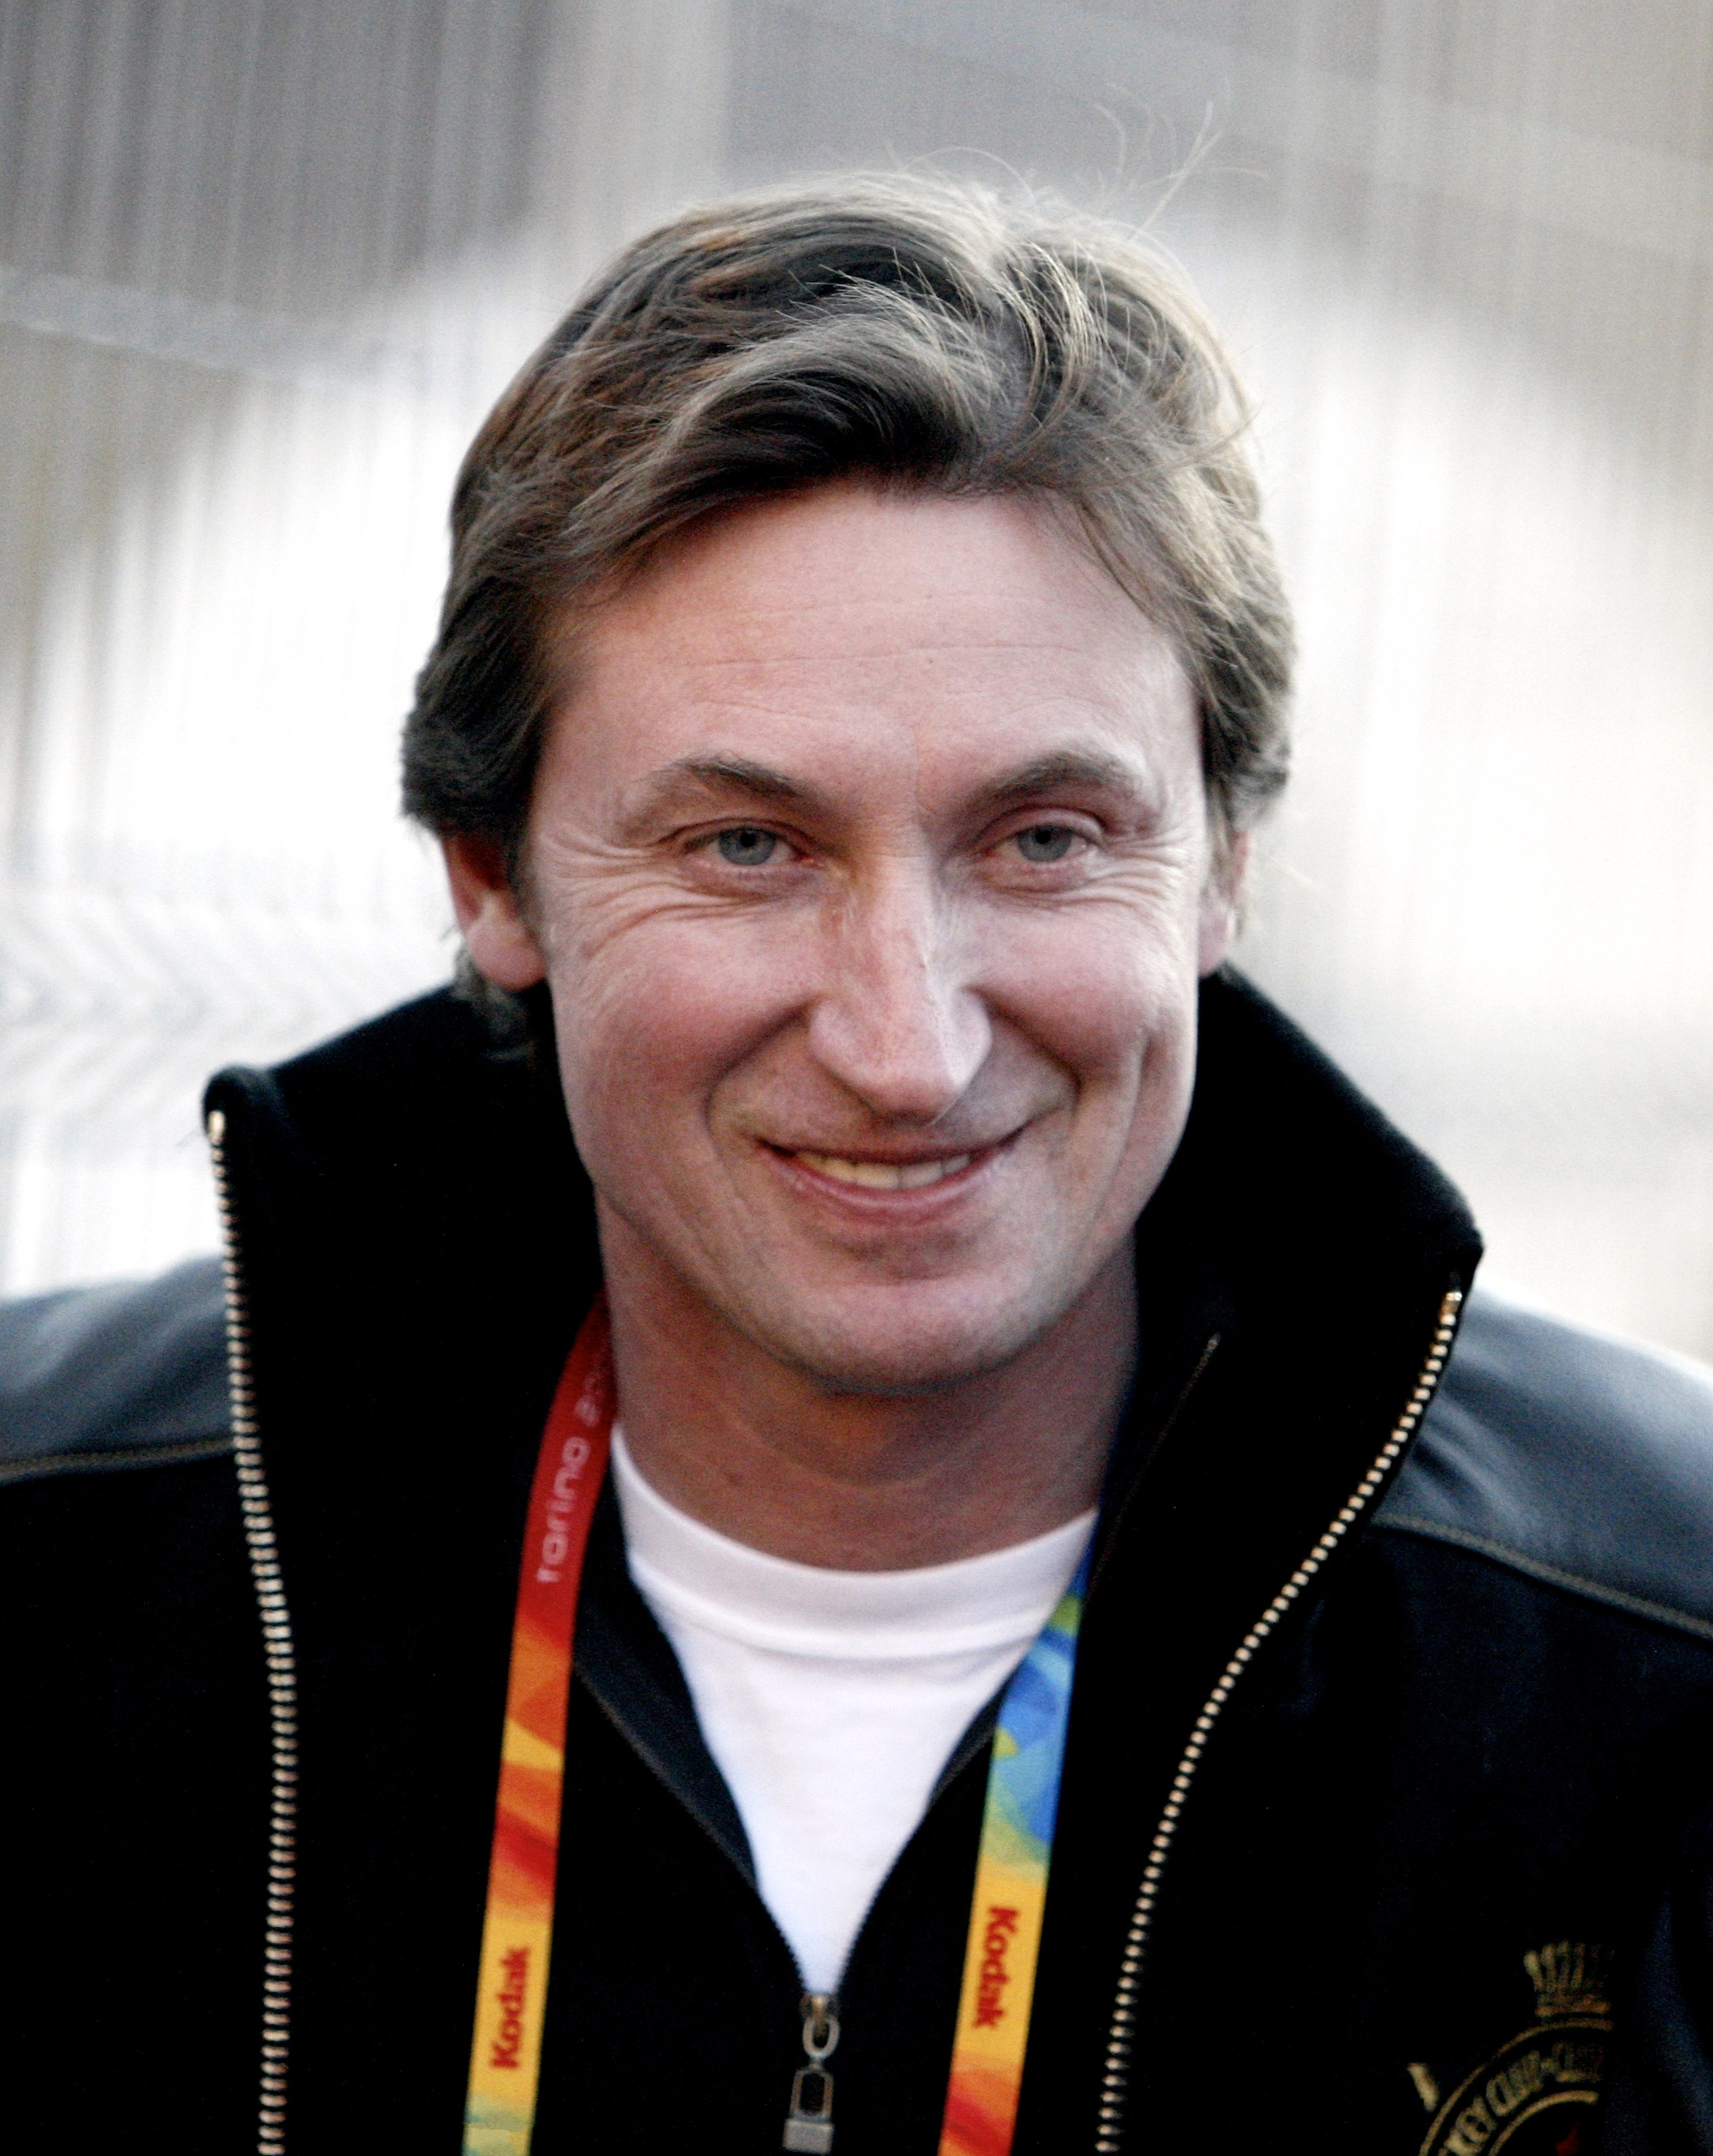 The 56-year old son of father (?) and mother(?), 183 cm tall Wayne Gretzky in 2018 photo